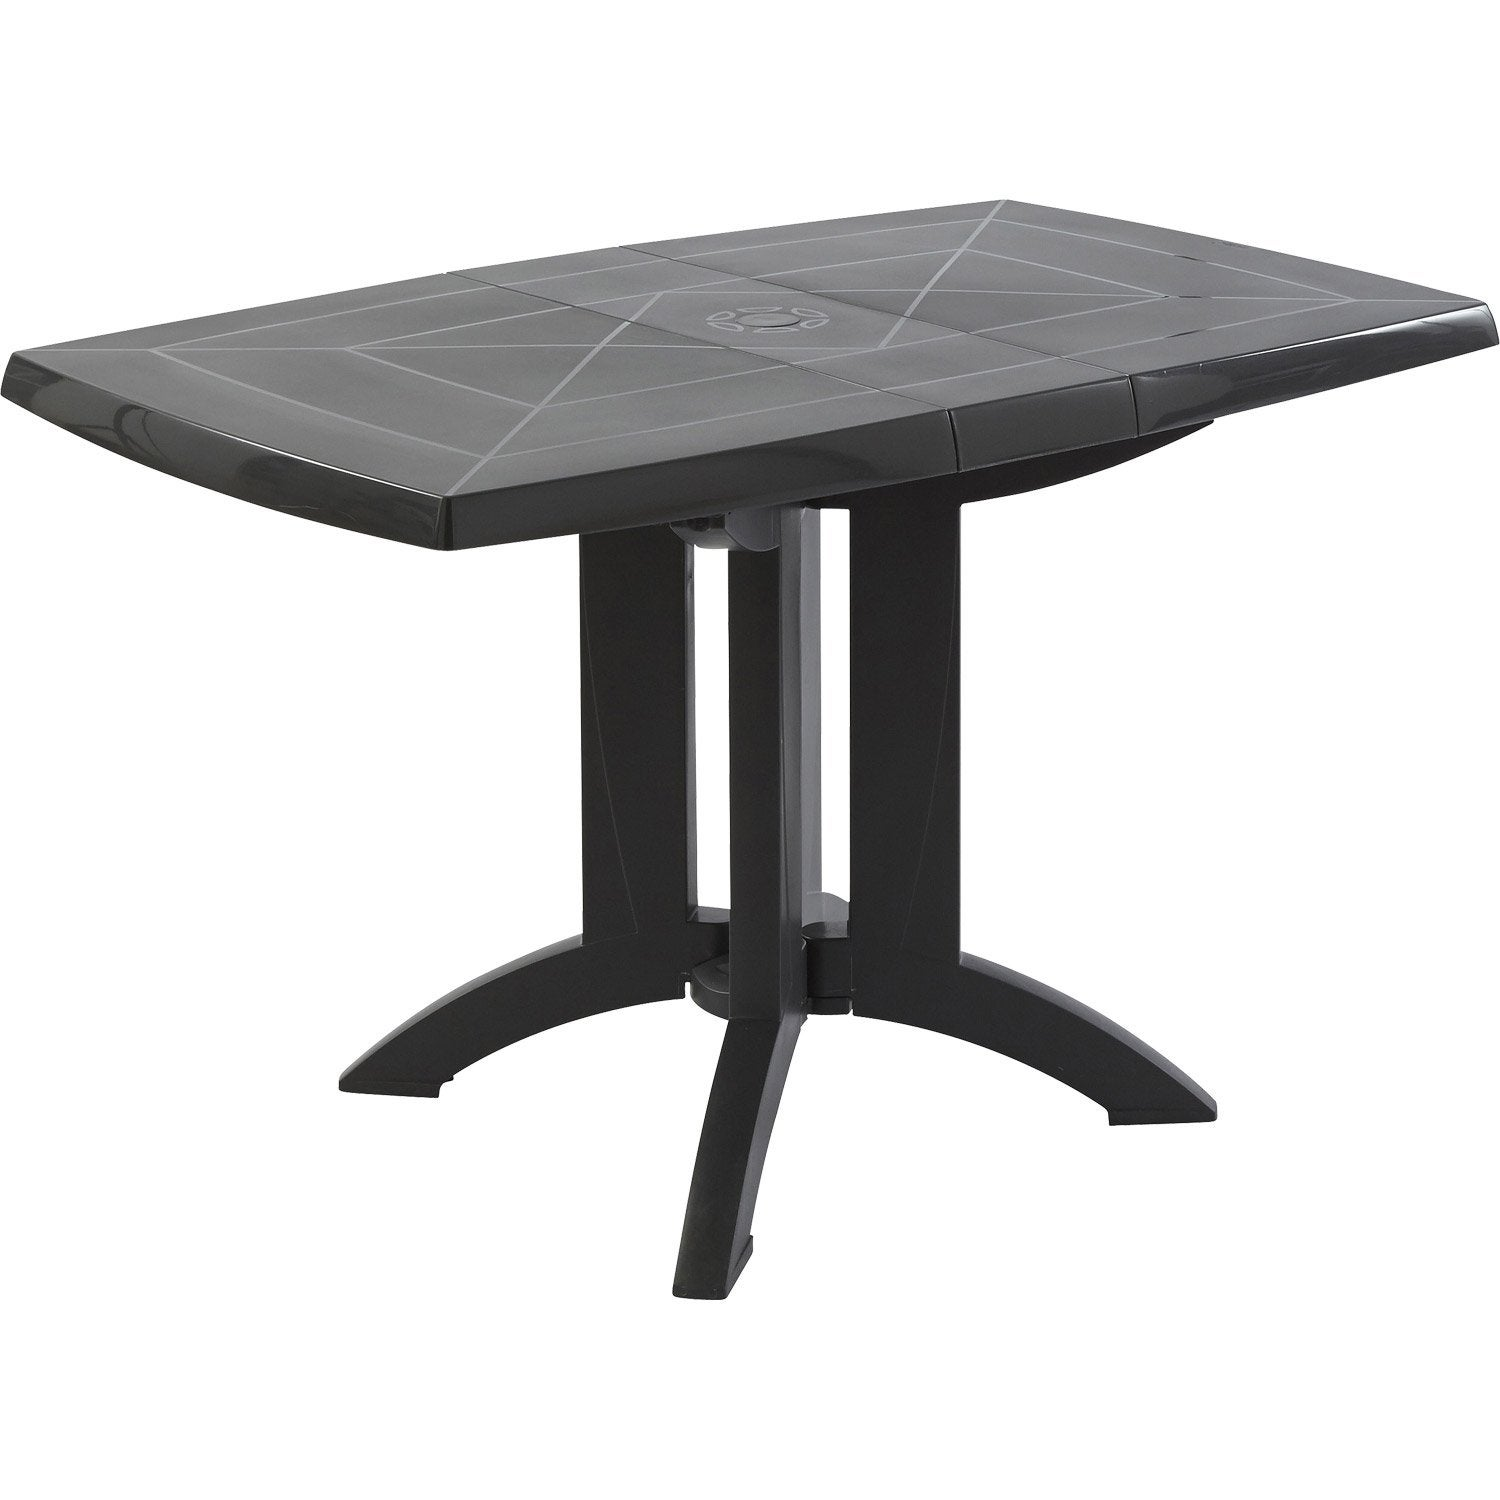 Table de jardin grosfillex v ga rectangulaire anthracite 4 for Table de nuit leroy merlin